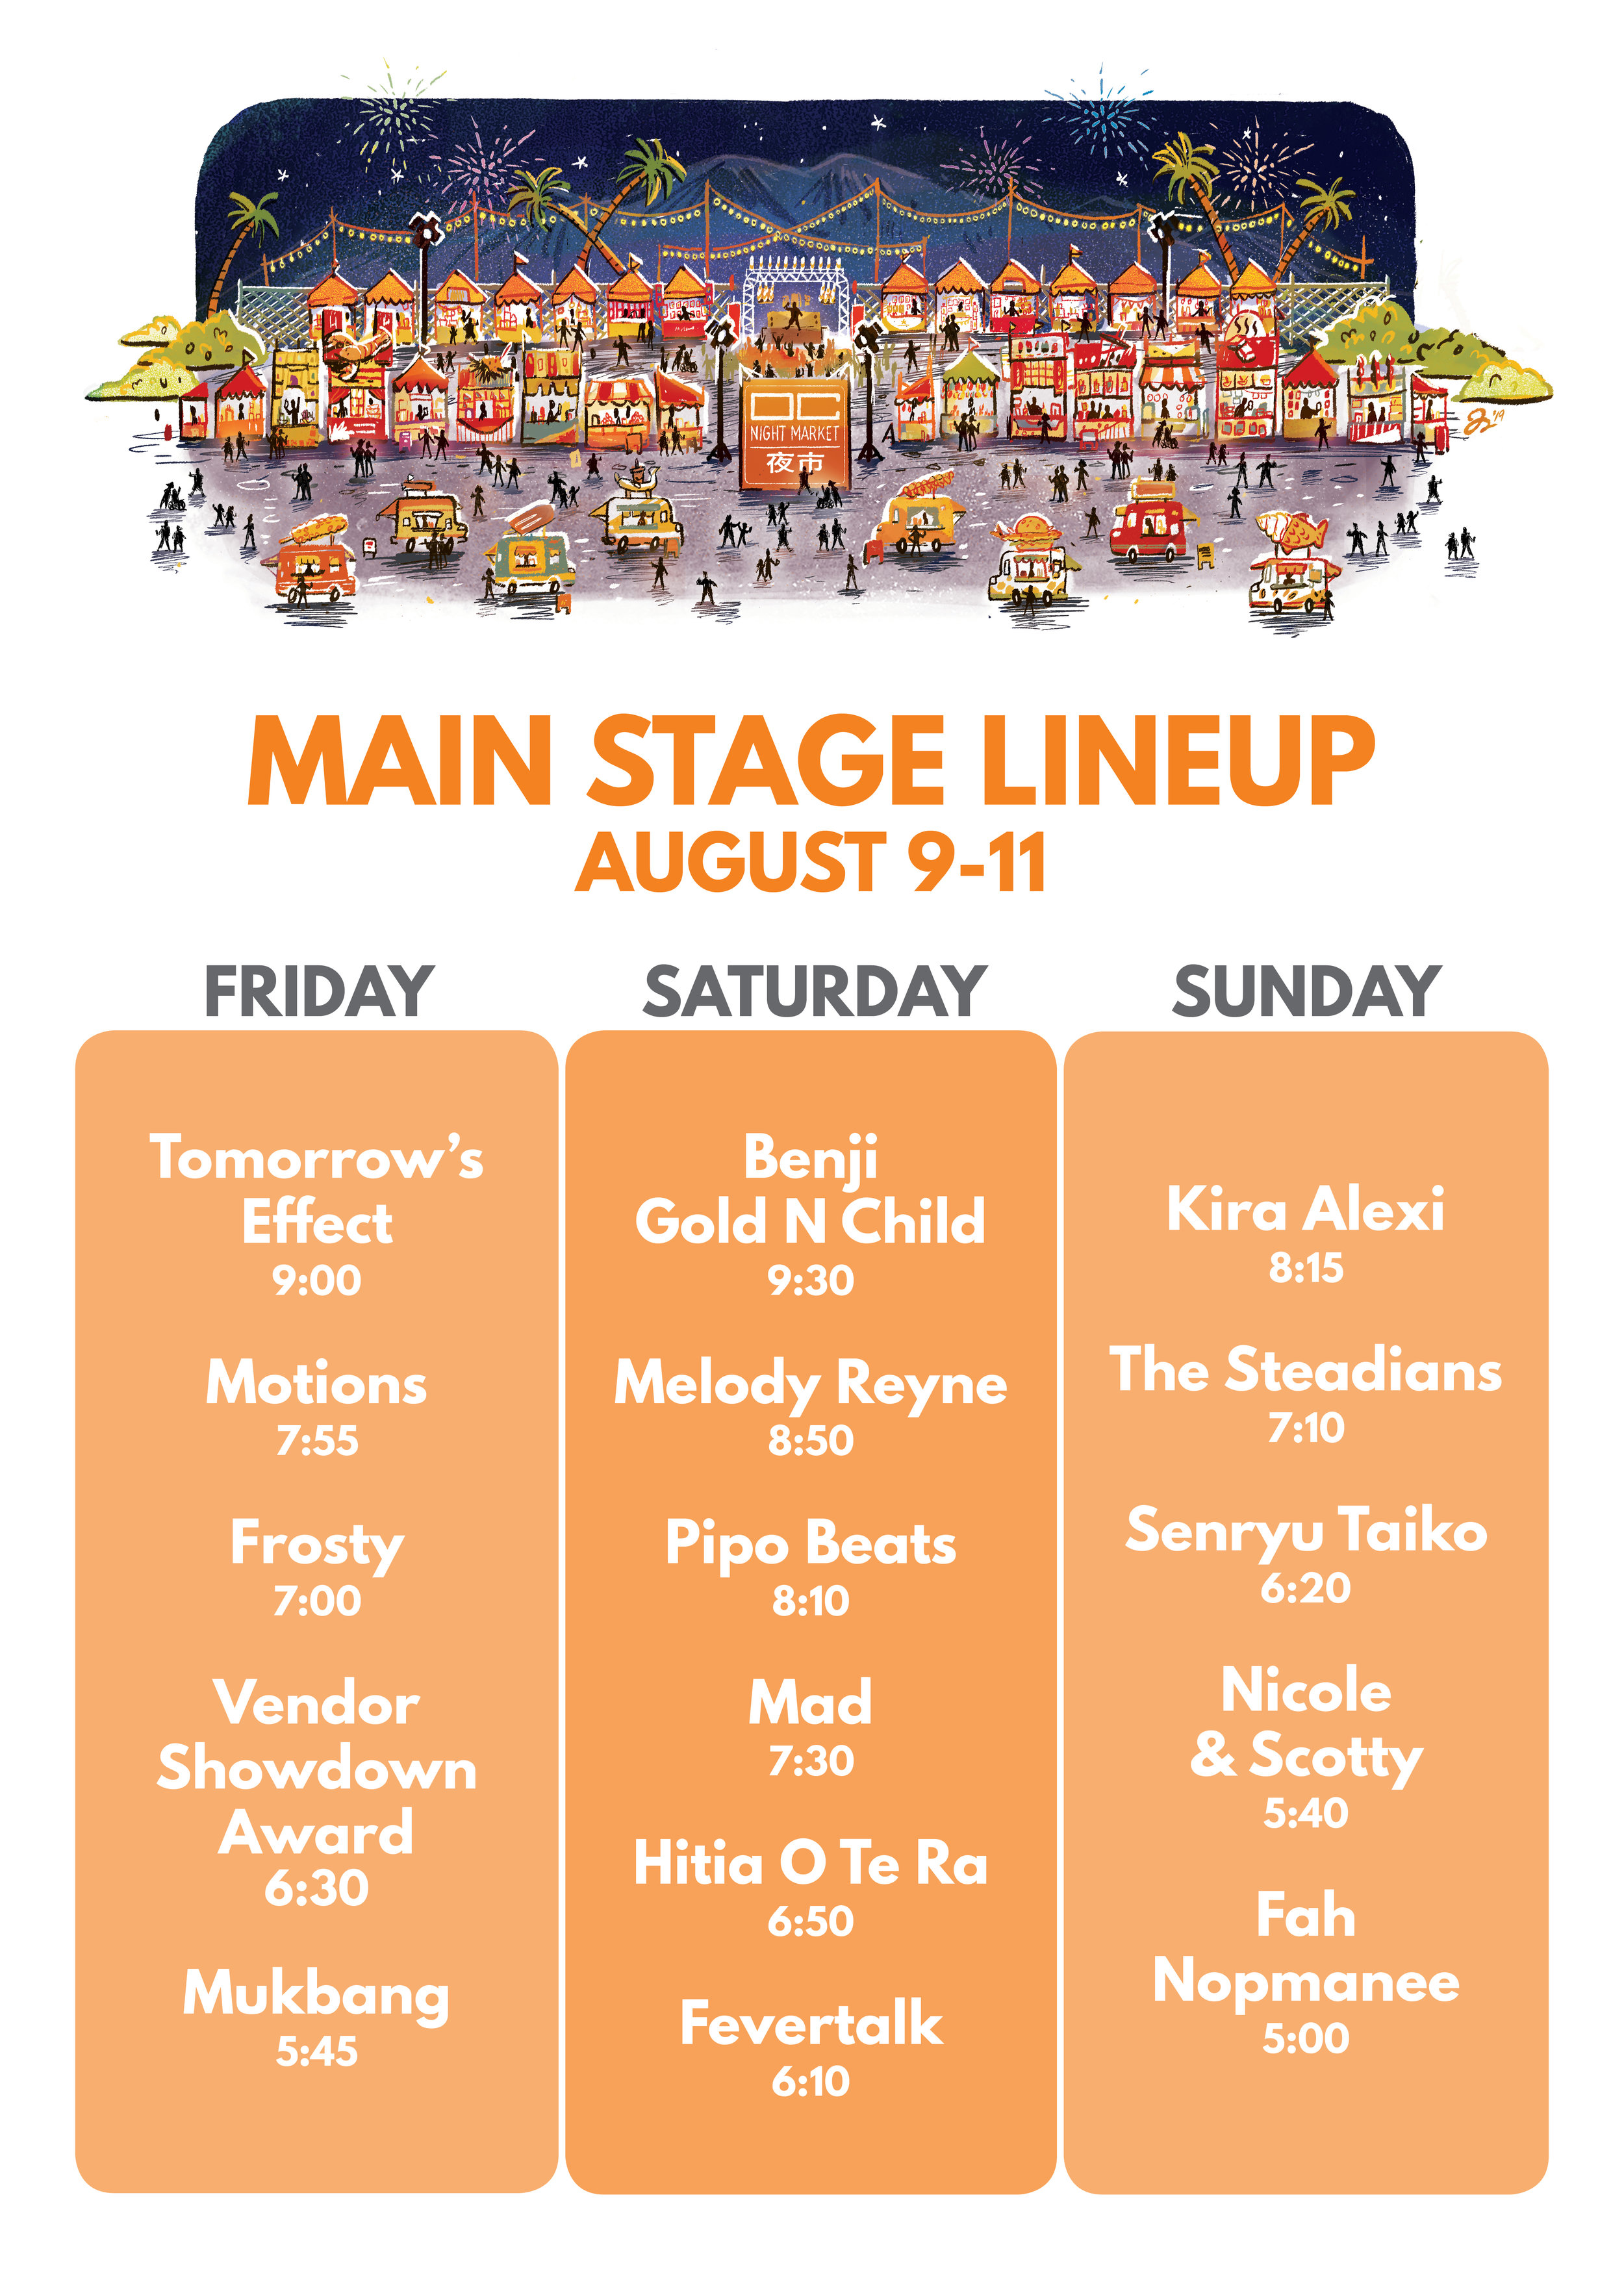 2019 OC August Main Stage Lineup v.2.jpg